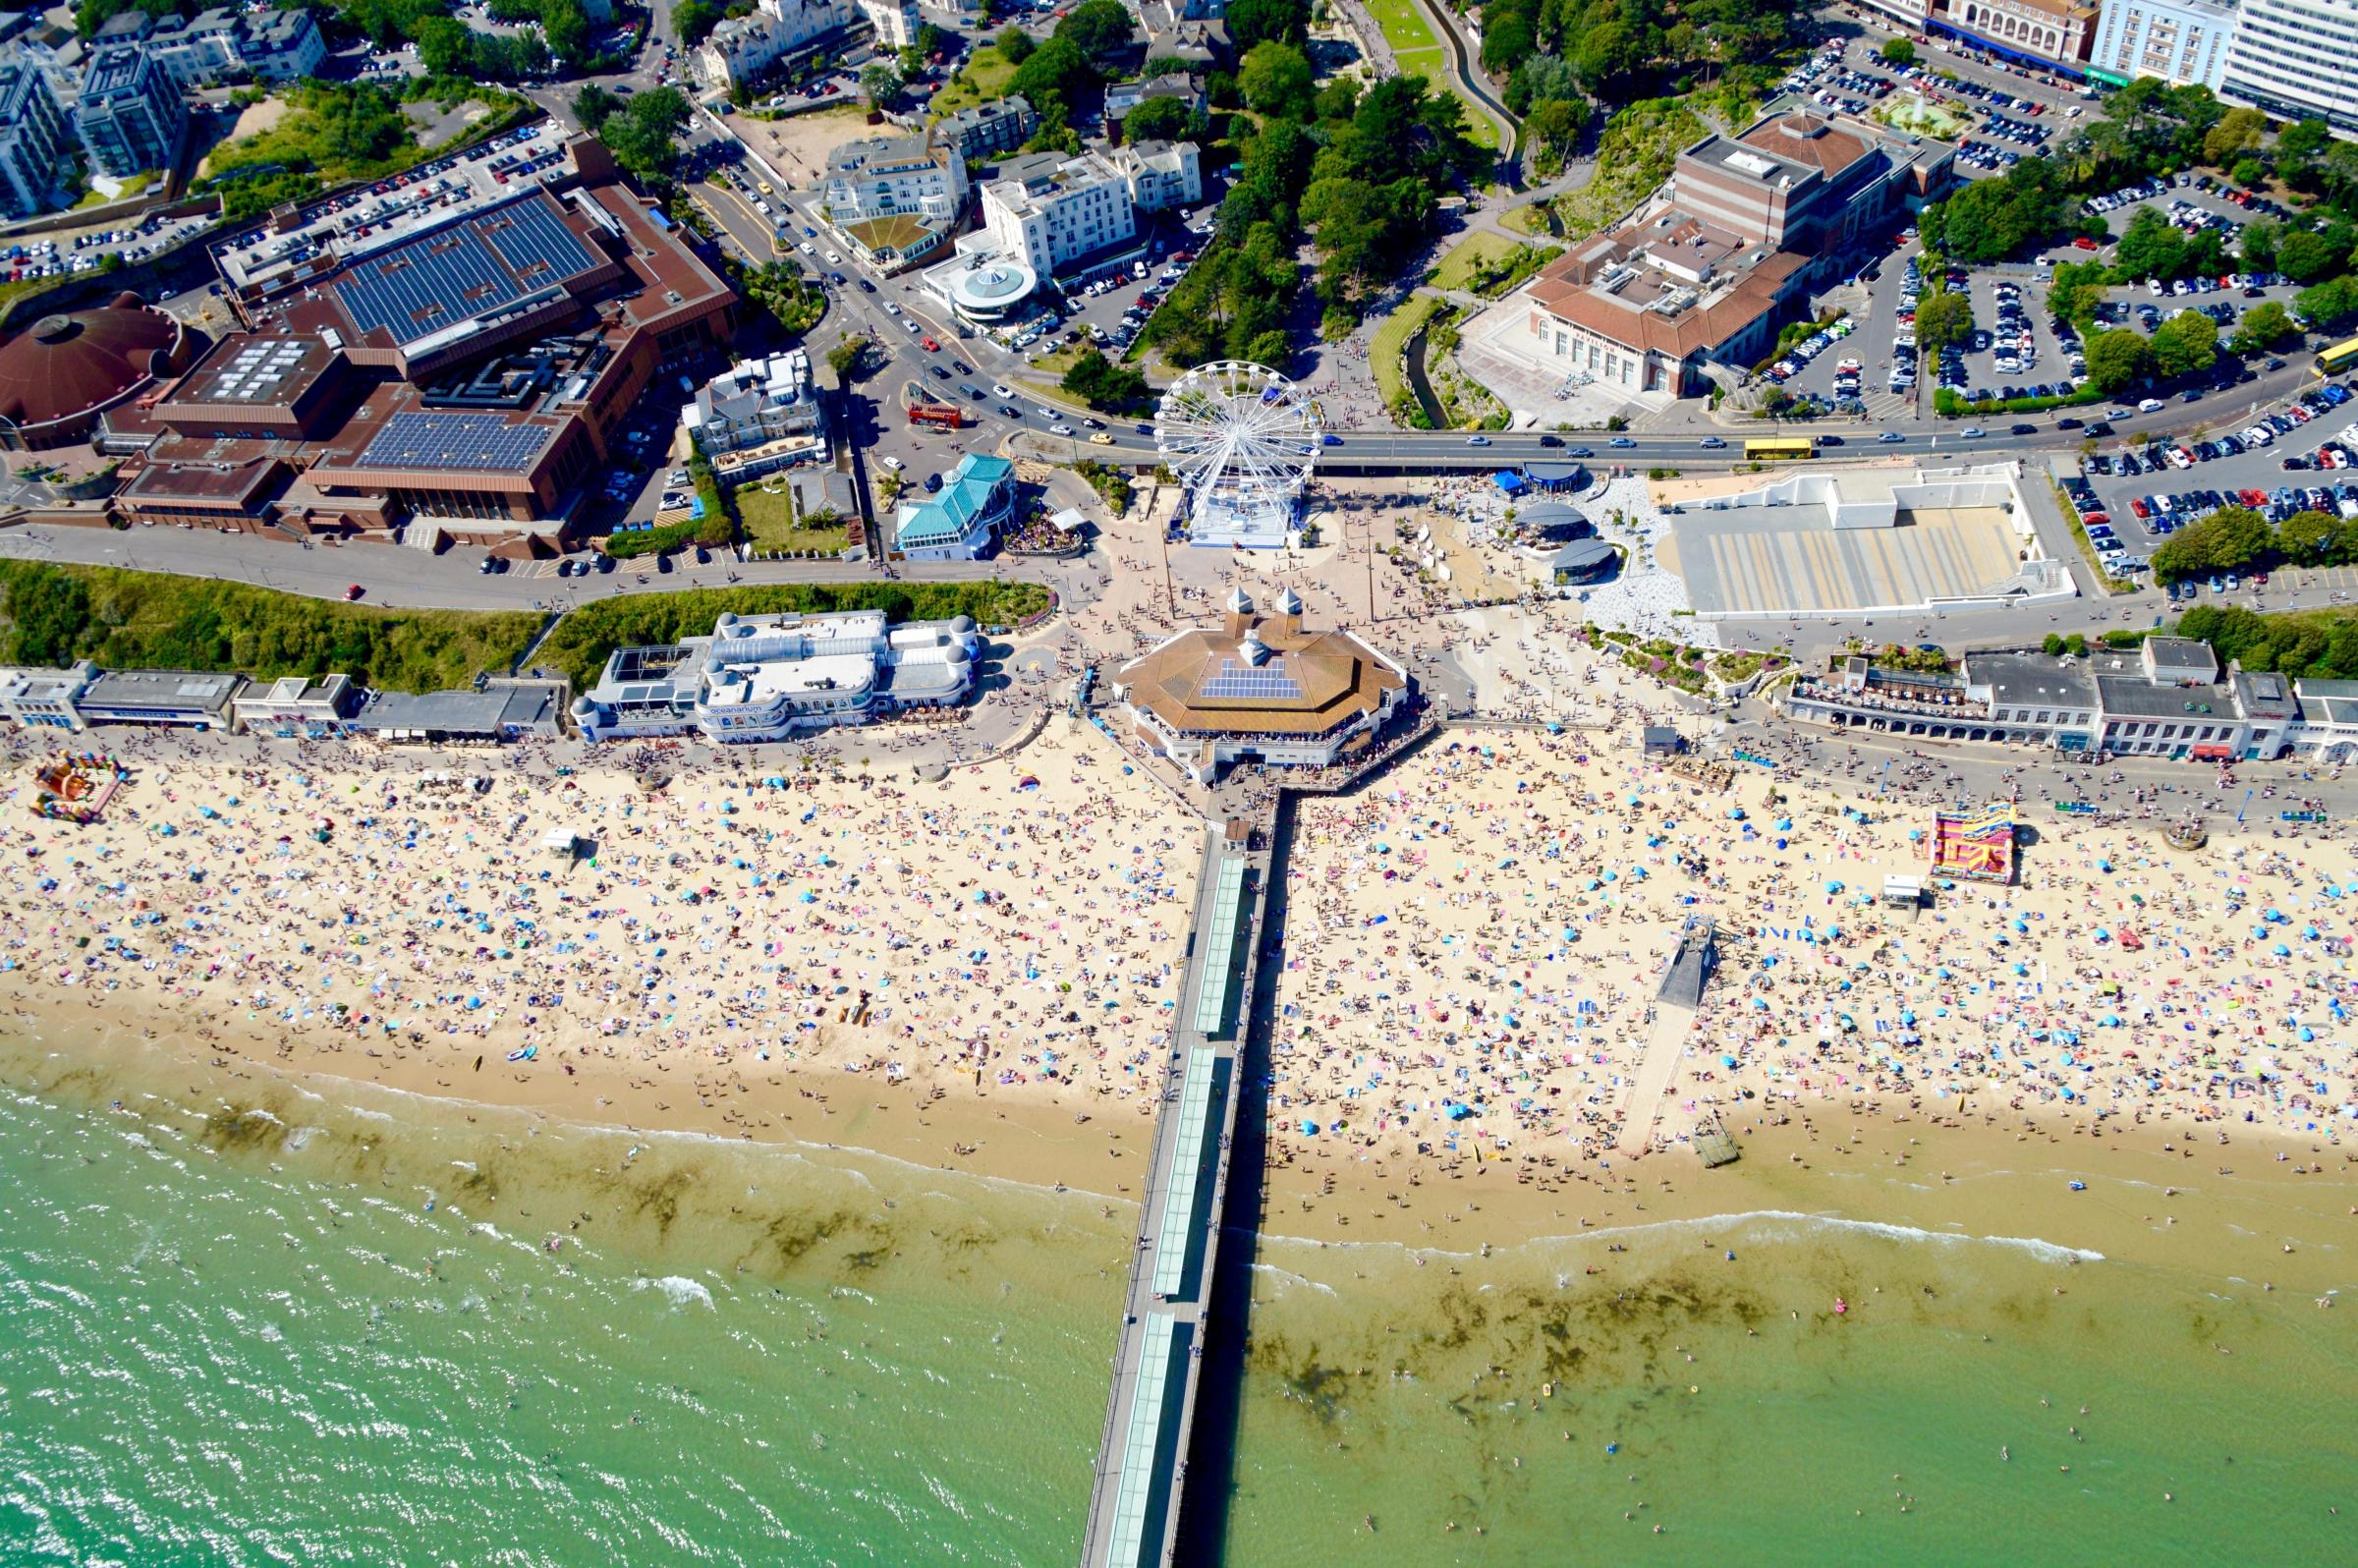 Bournemouth seafront on Saturday, June 17, 2017. Picture: Stephen Bath.